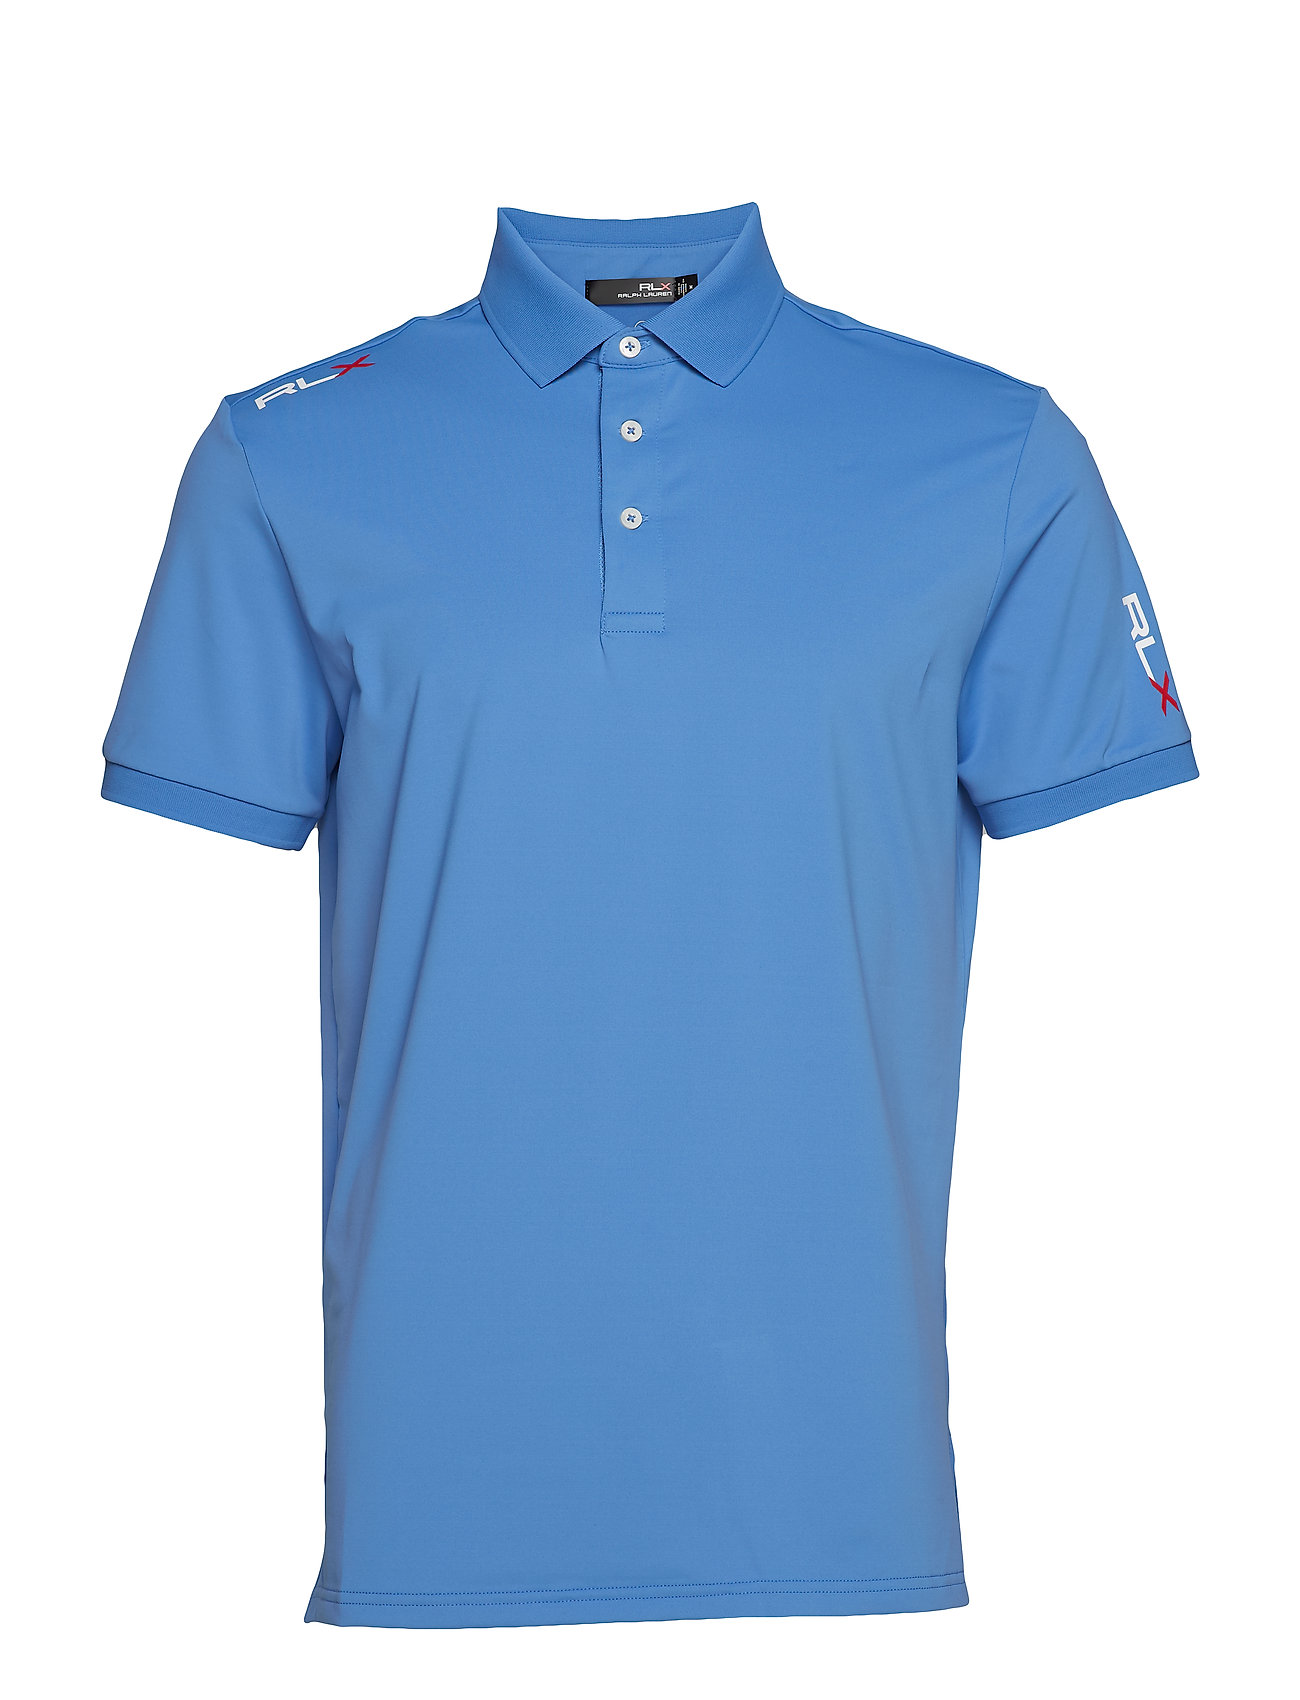 d8d0f84d08f Active Fit Performance Polo (New England Blue) (109 €) - Ralph ...